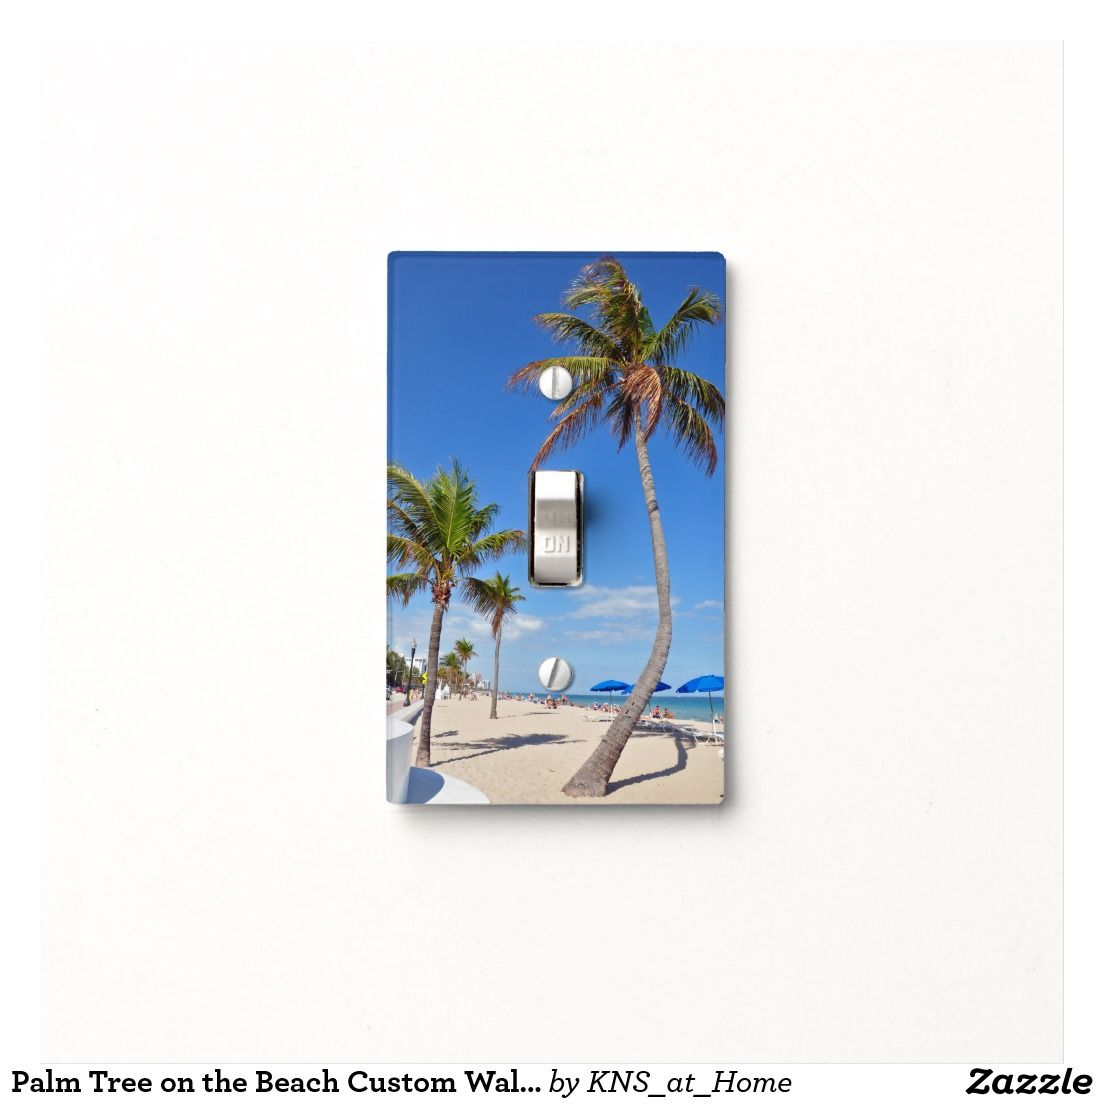 Palm Tree on the Beach Custom Wall/Switch Cover Switch Plate Cover - original photograph printed on acrylic.